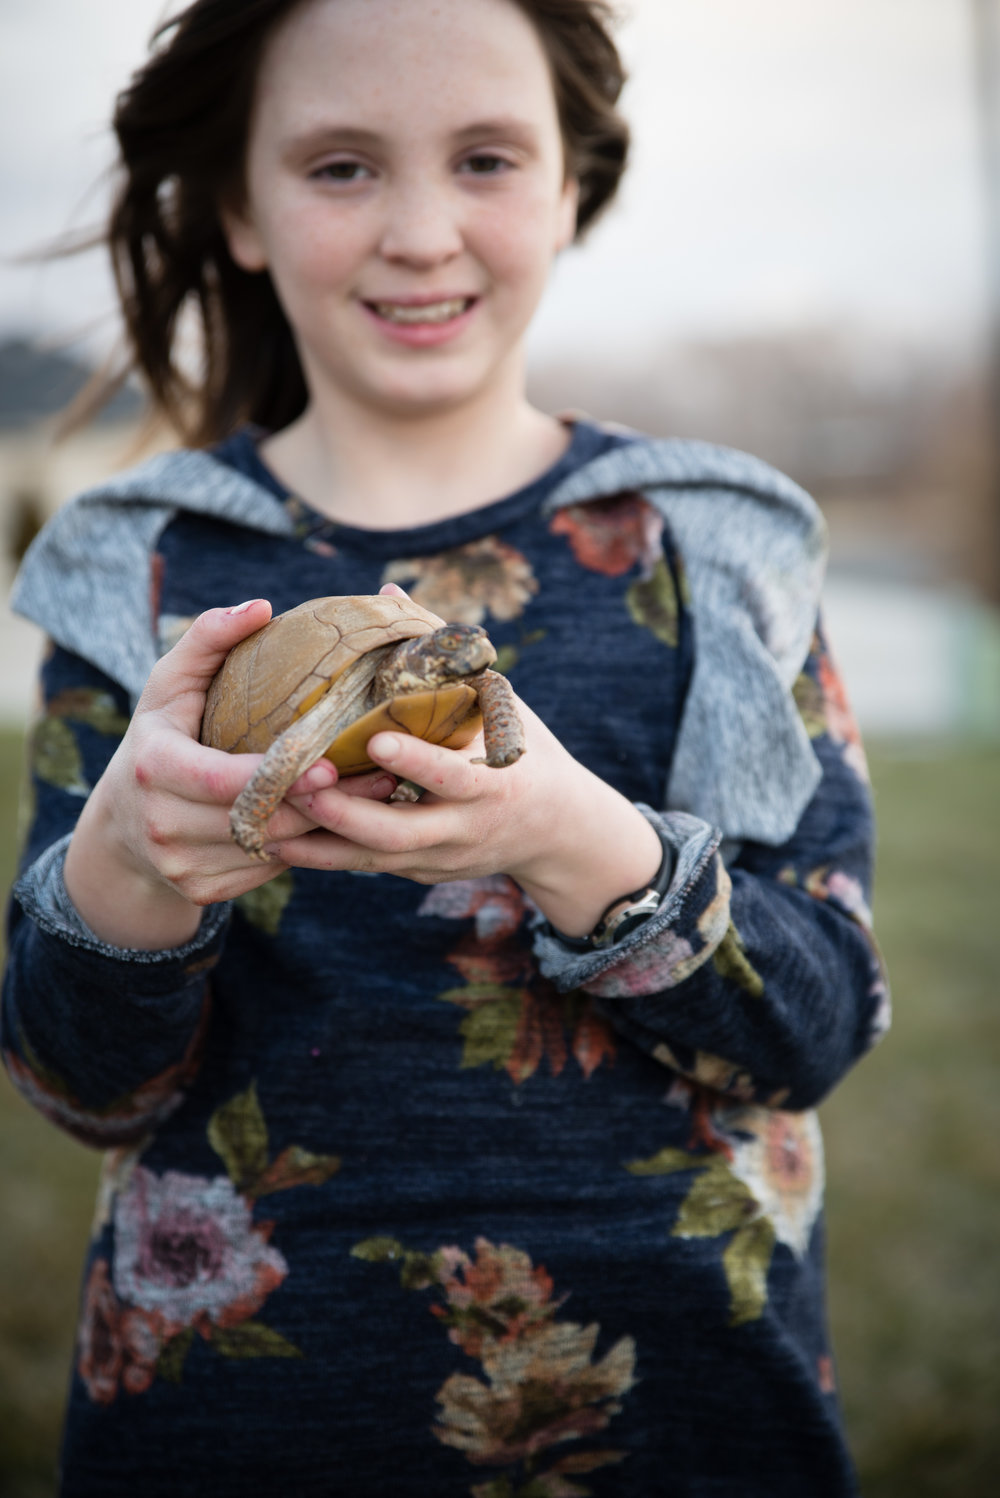 Regan and her pet turtle, Shelby